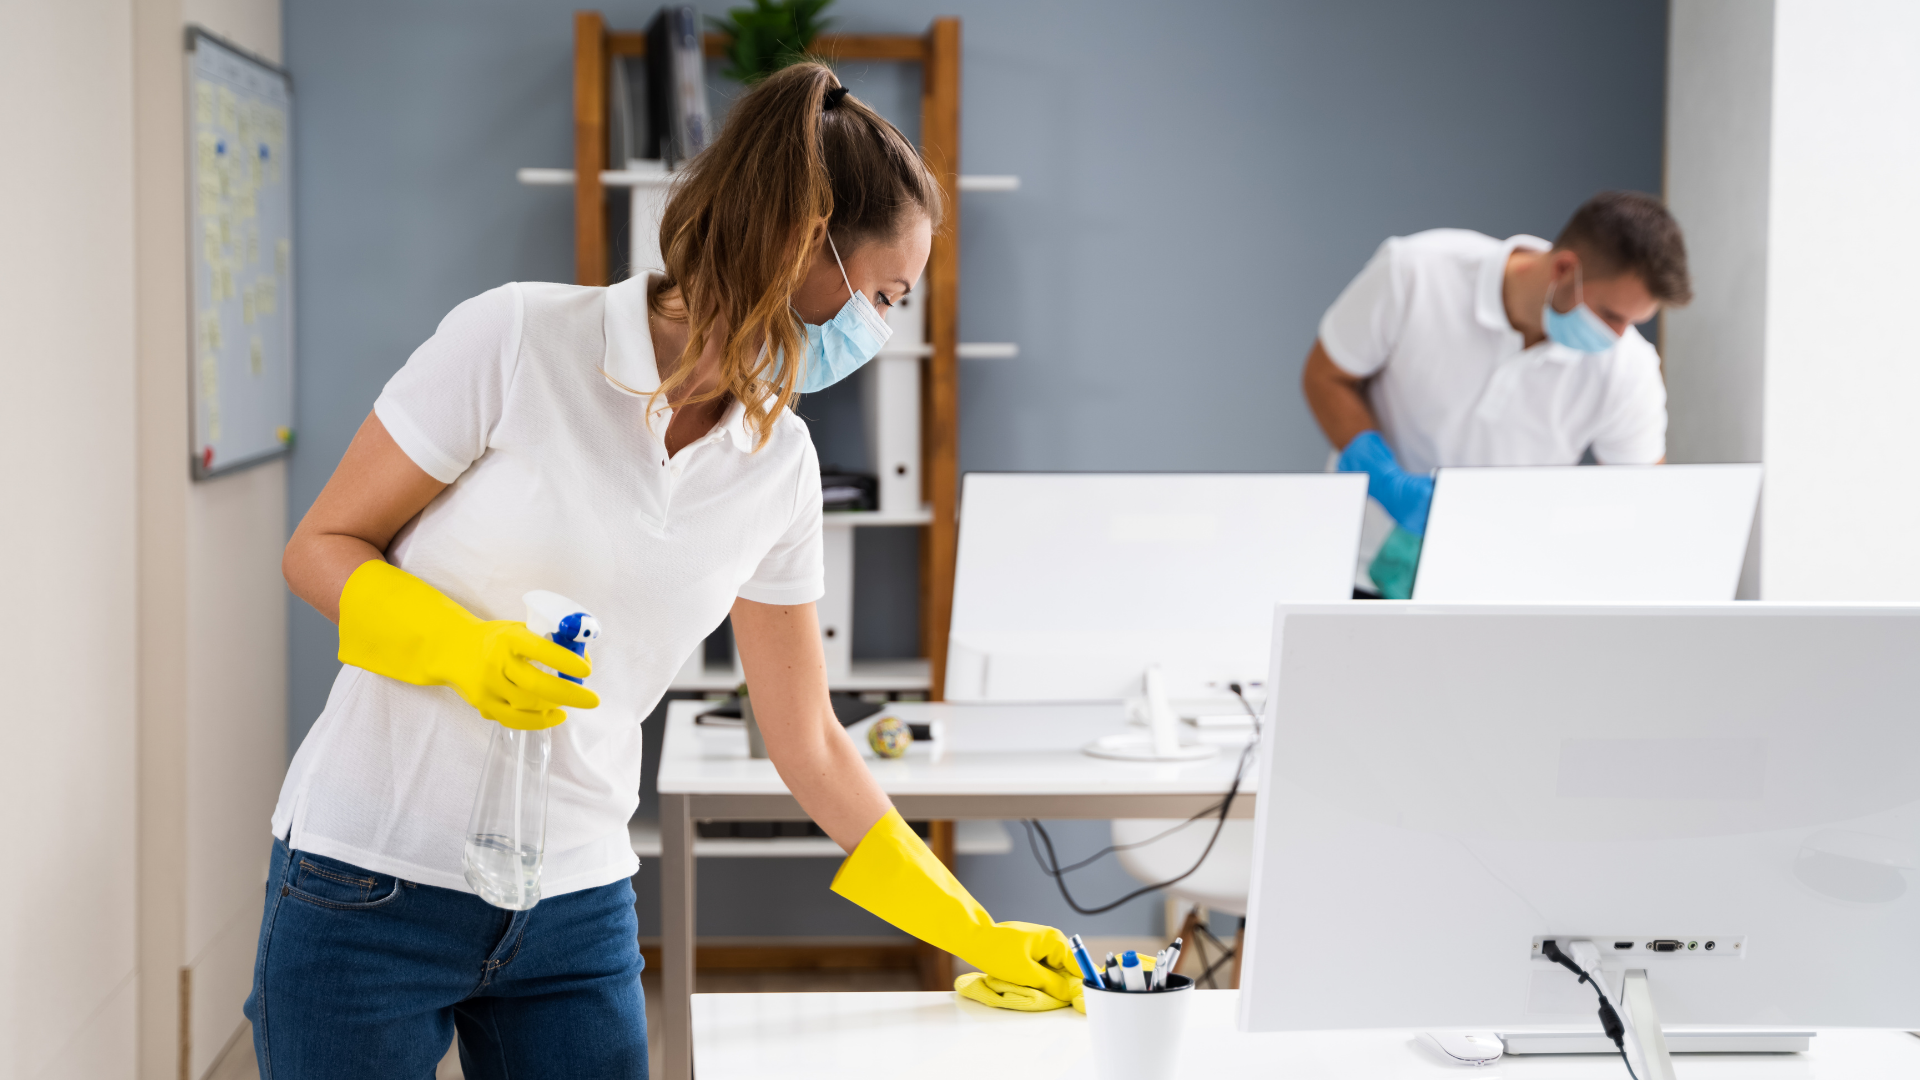 office cleaning services auckland kleenco